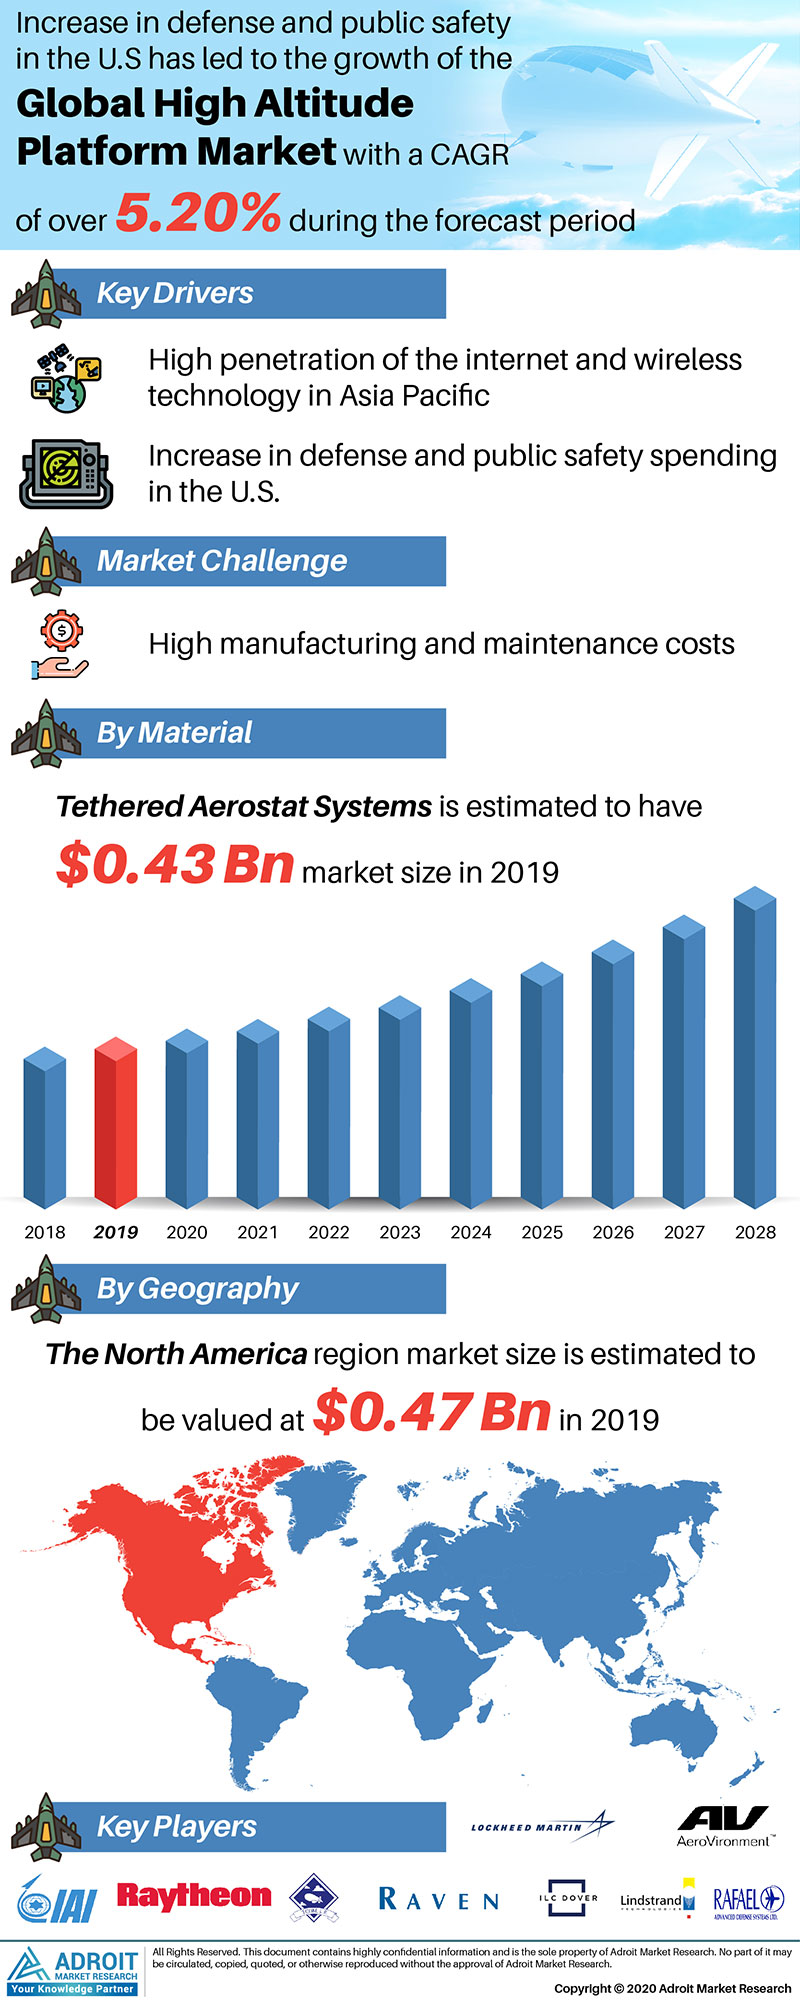 High Altitude Platform Market Size 2017 By Application, Product, Region and Forecast 2019 to 2025